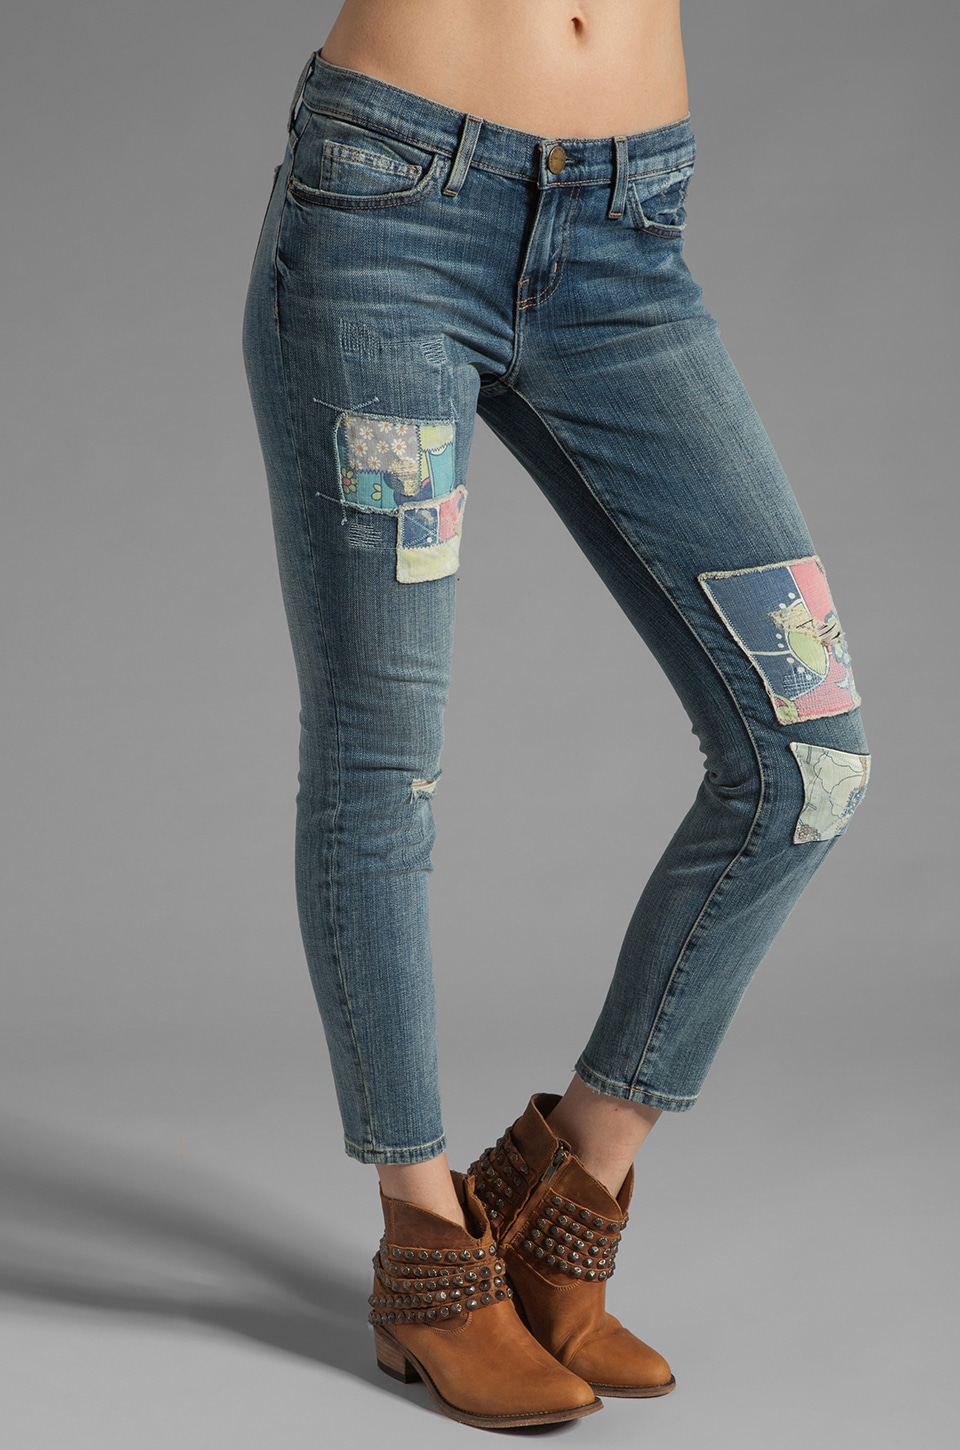 Current/Elliott The Stiletto in Hippie Patchwork Destroy